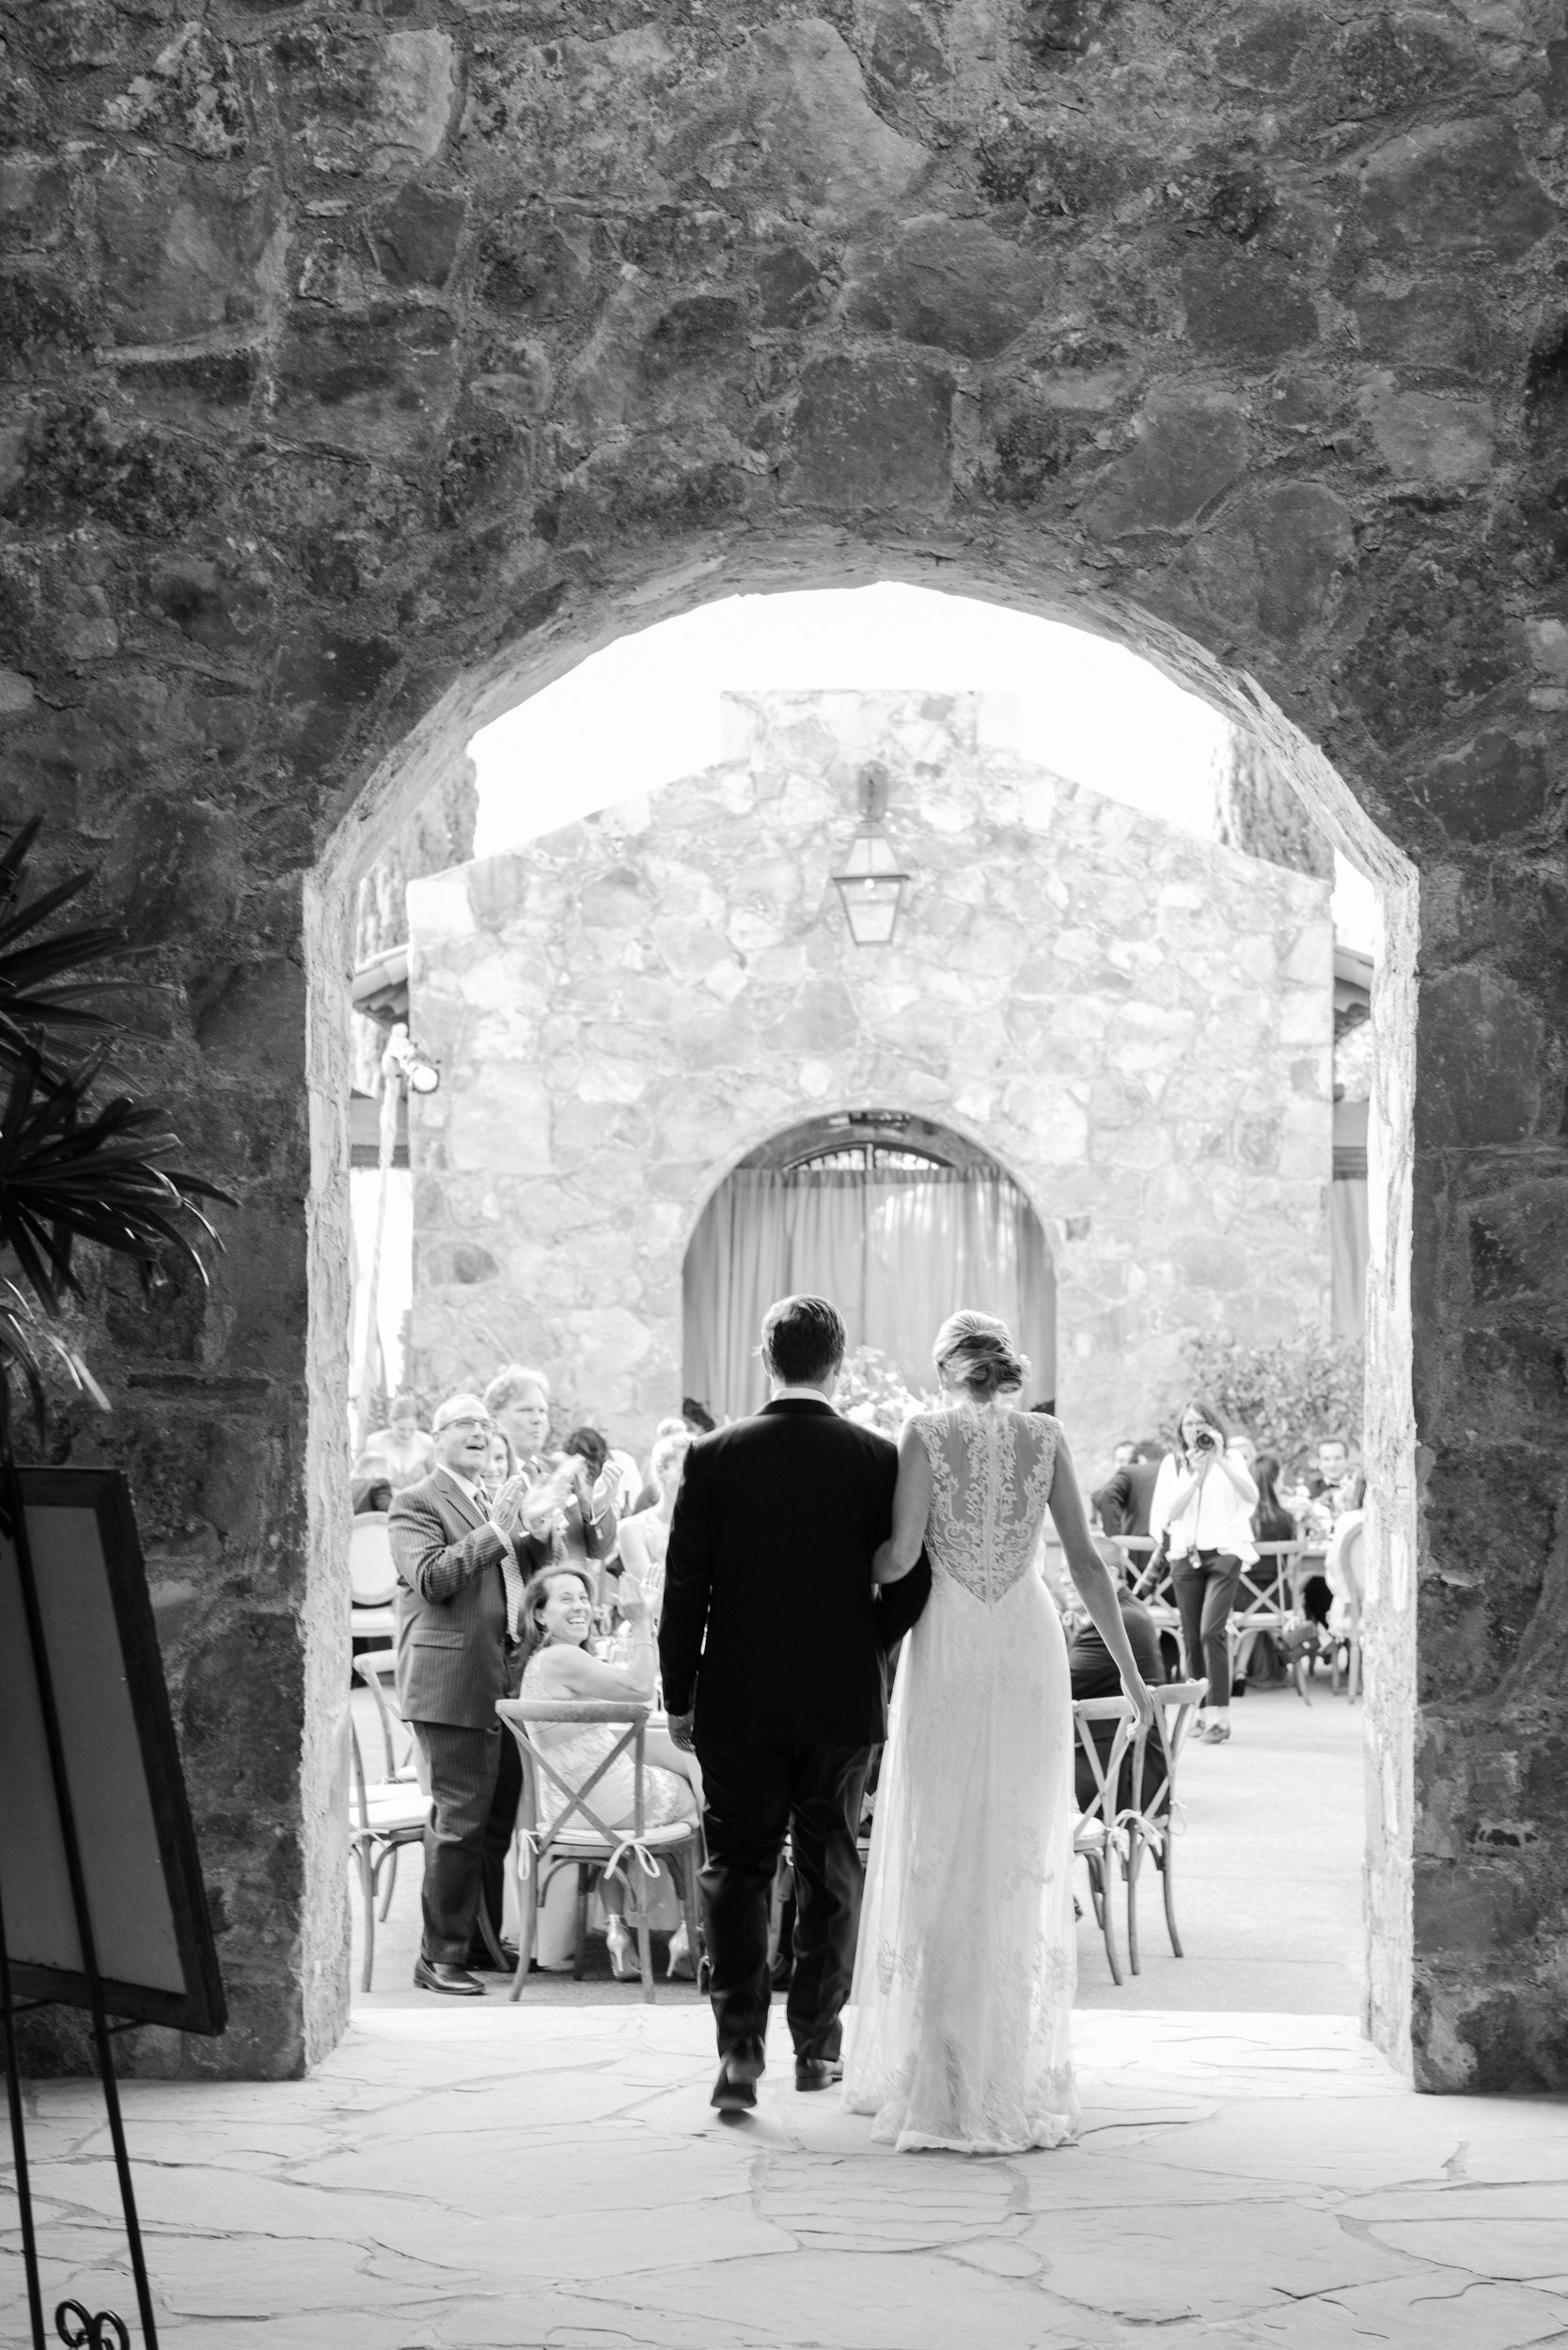 Caroline and Philip enter the outdoor reception courtyard as husband and wife for the first time; photo by Sylvie Gil